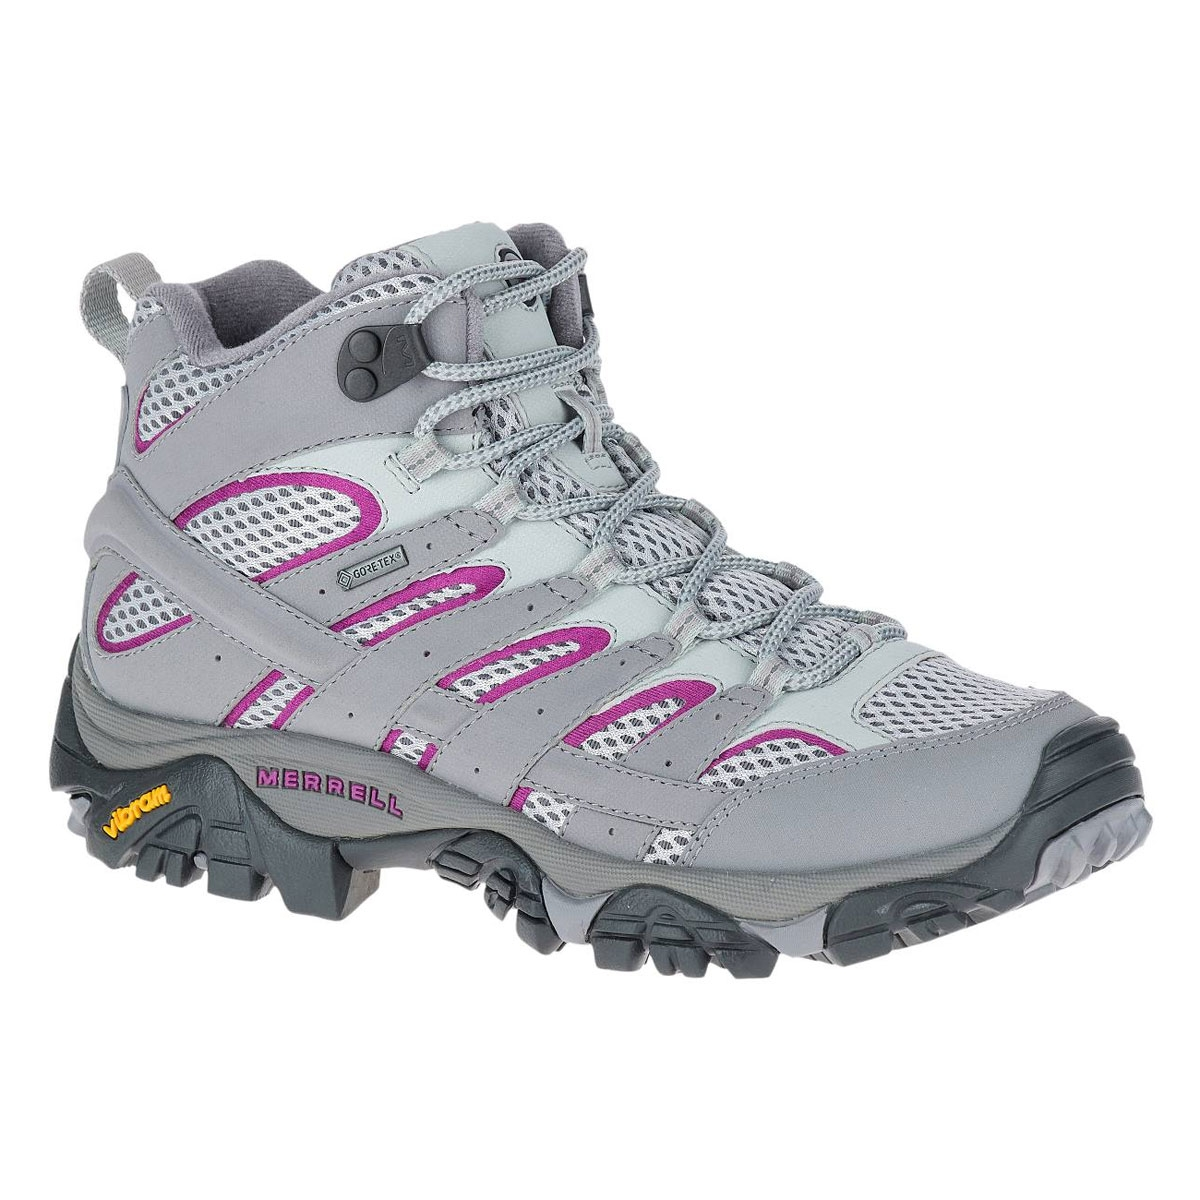 Image of Merrell Moab 2 MID GTX Walking Boots (Women s) - Frost Grey 4b956d3a13